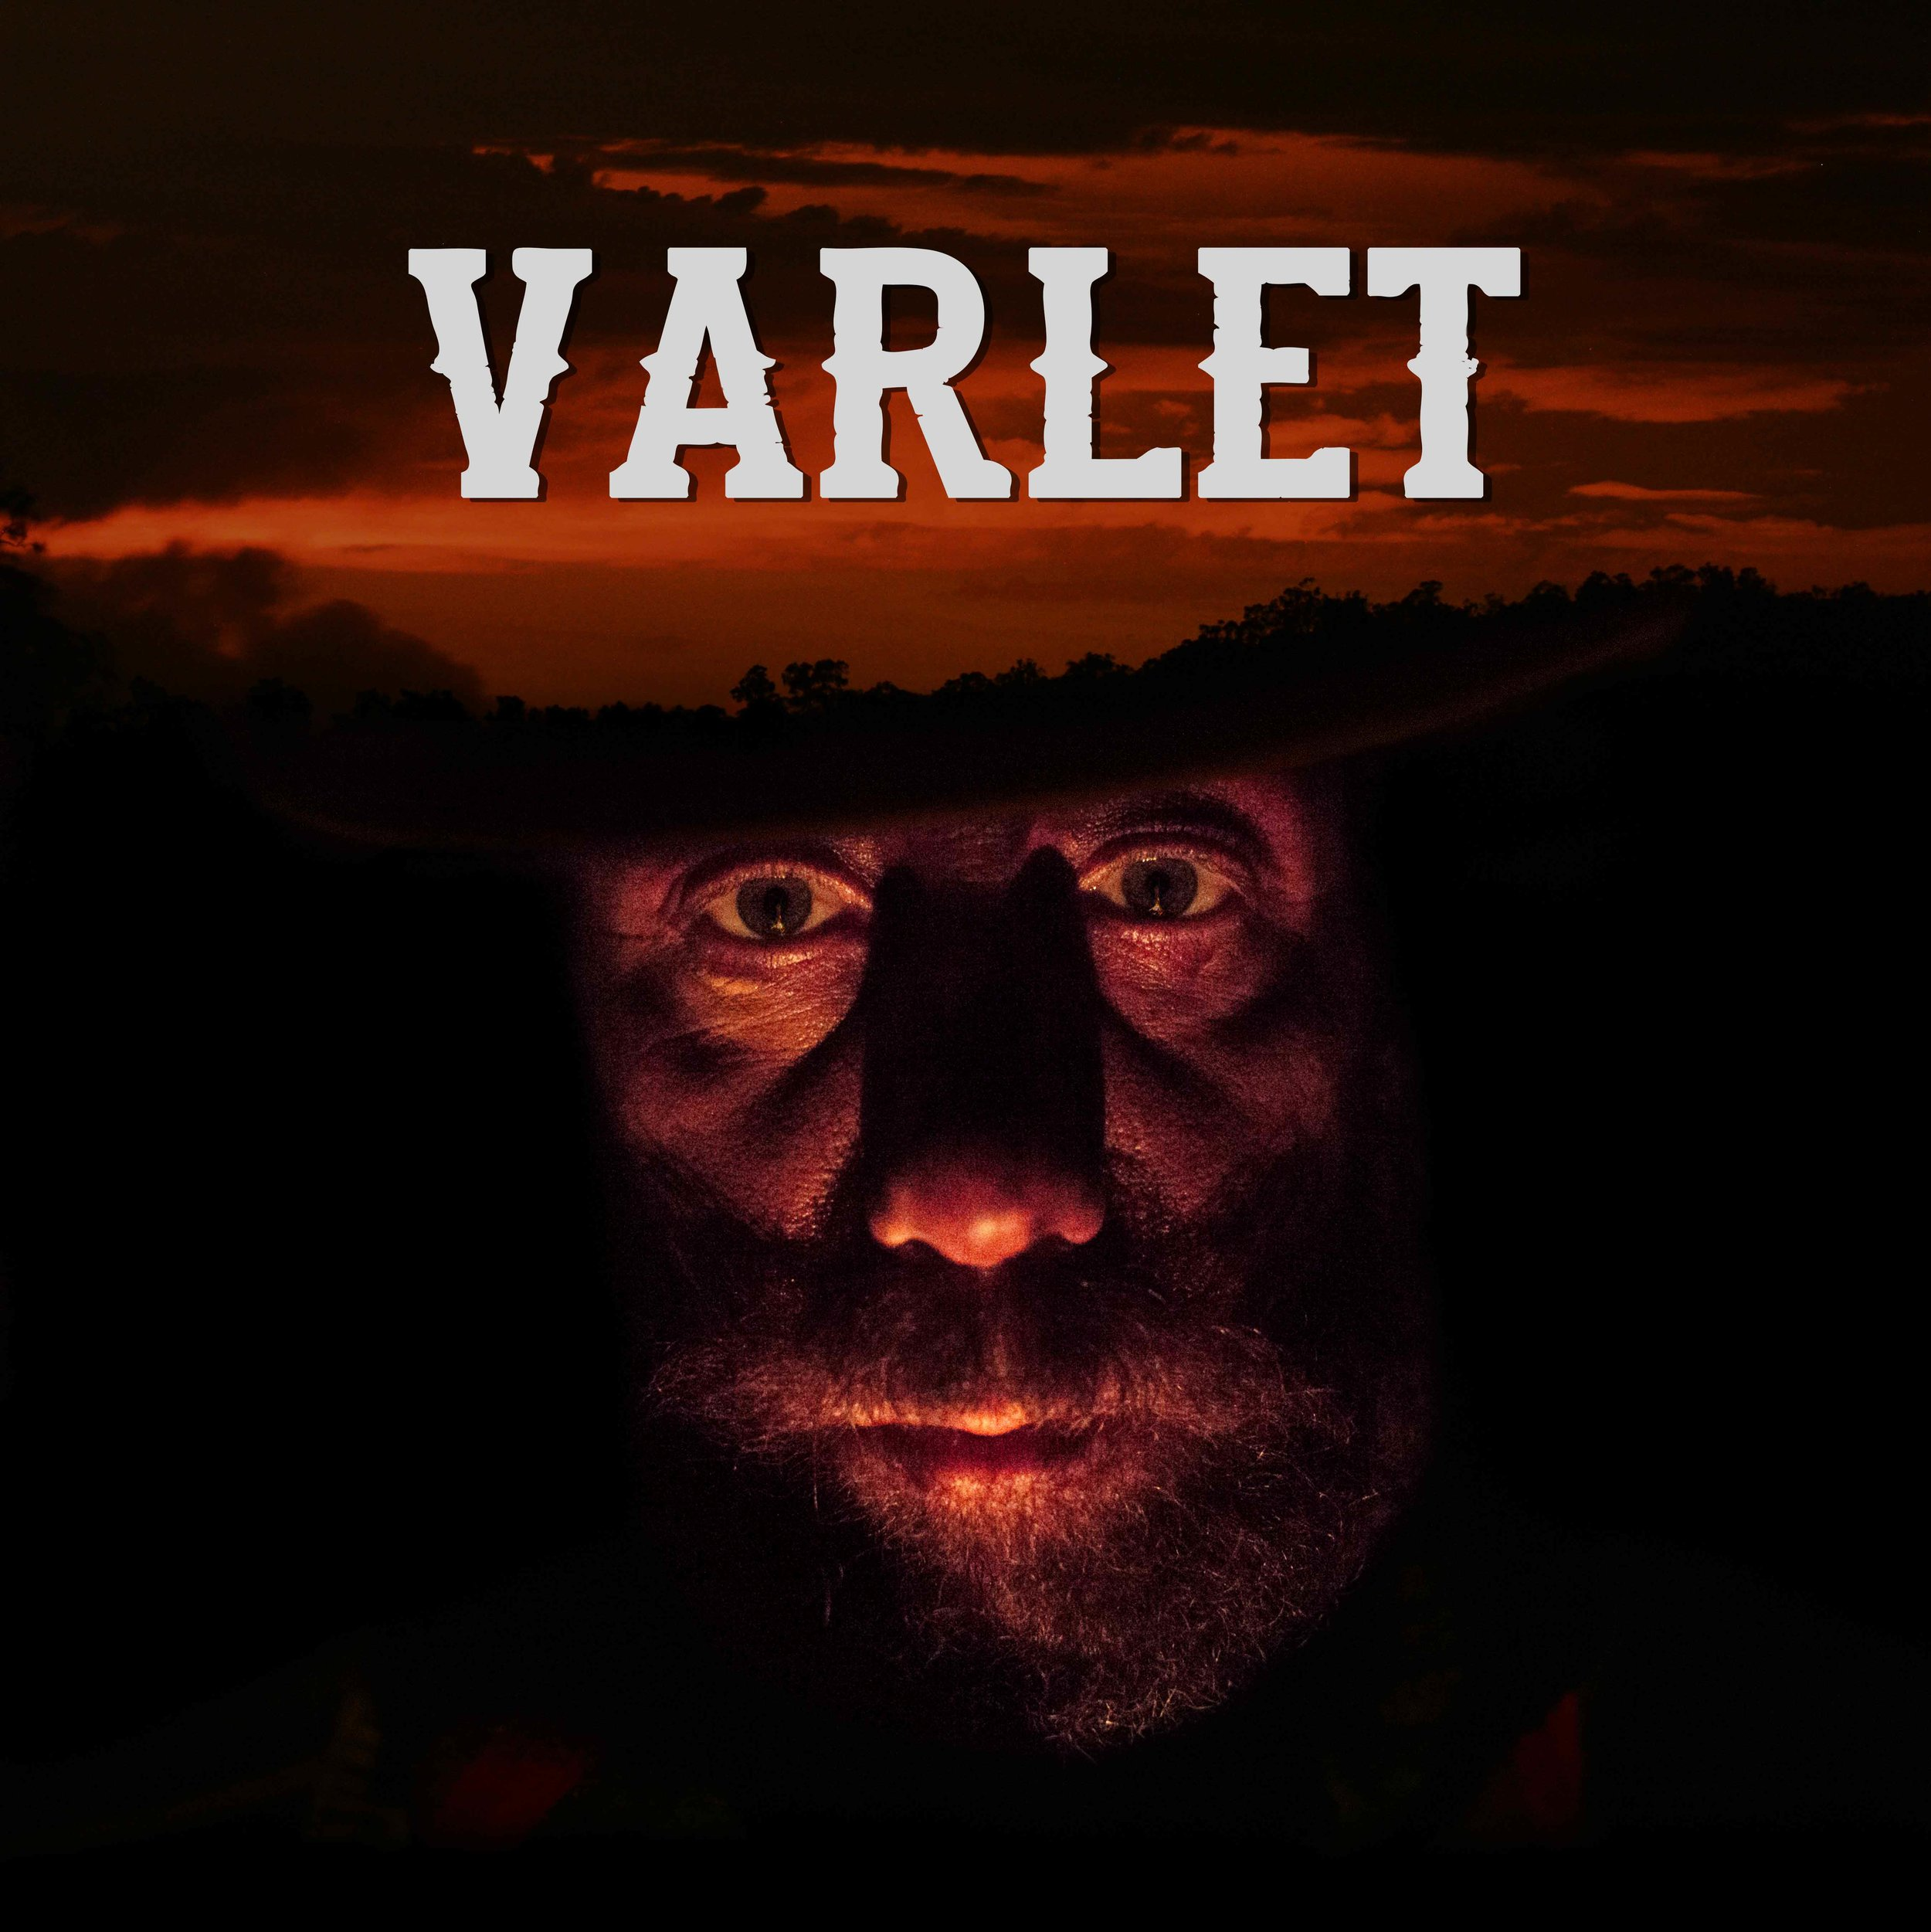 Varlet (Short - Western Drama)   A backwoods trapper is forced into a life or death situation when he encounters a dangerous stranger at his camp.